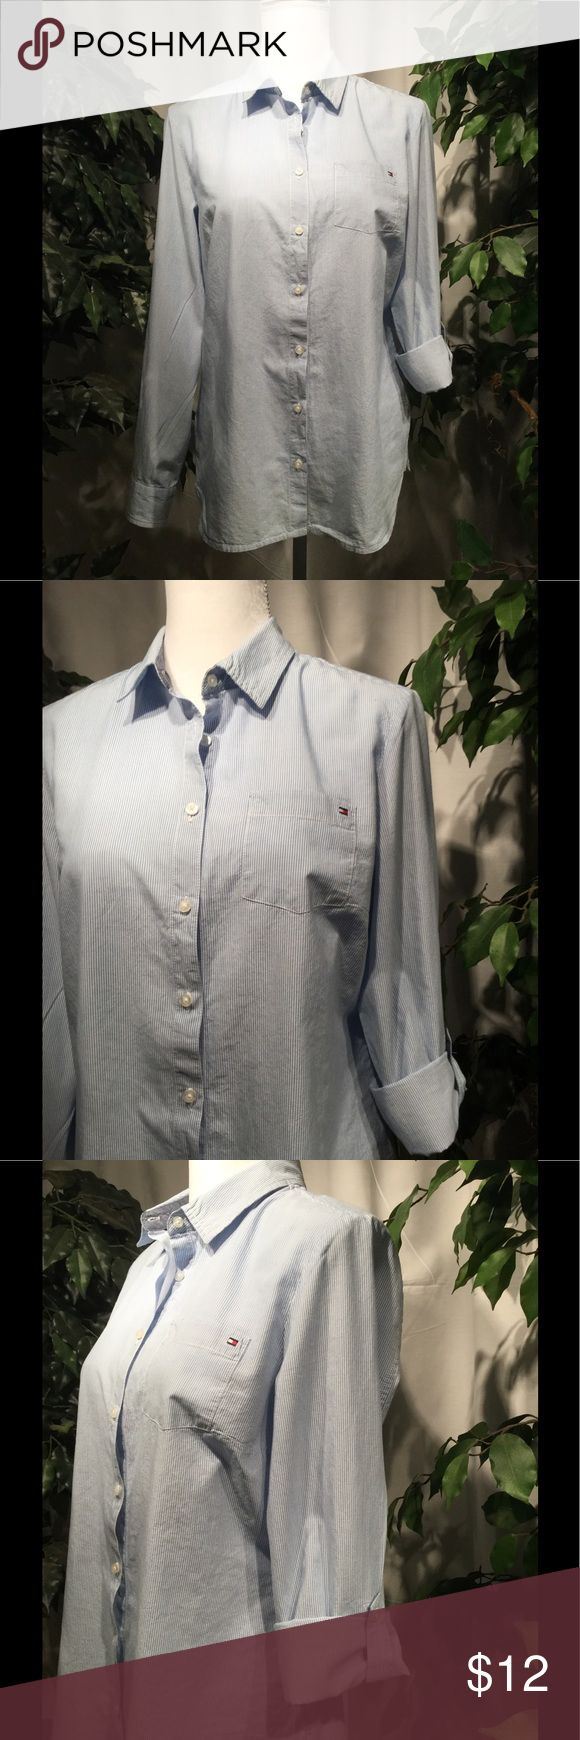 Tommy Hilfiger Buttoned Down Shirt W/ Roll Sleeve Very cute tailored, striped buttoned down shirt with rolled sleeves. A very versatile shirt and a great for summer🌞🌞🌞🌞🌞 Tommy Hilfiger Tops Button Down Shirts